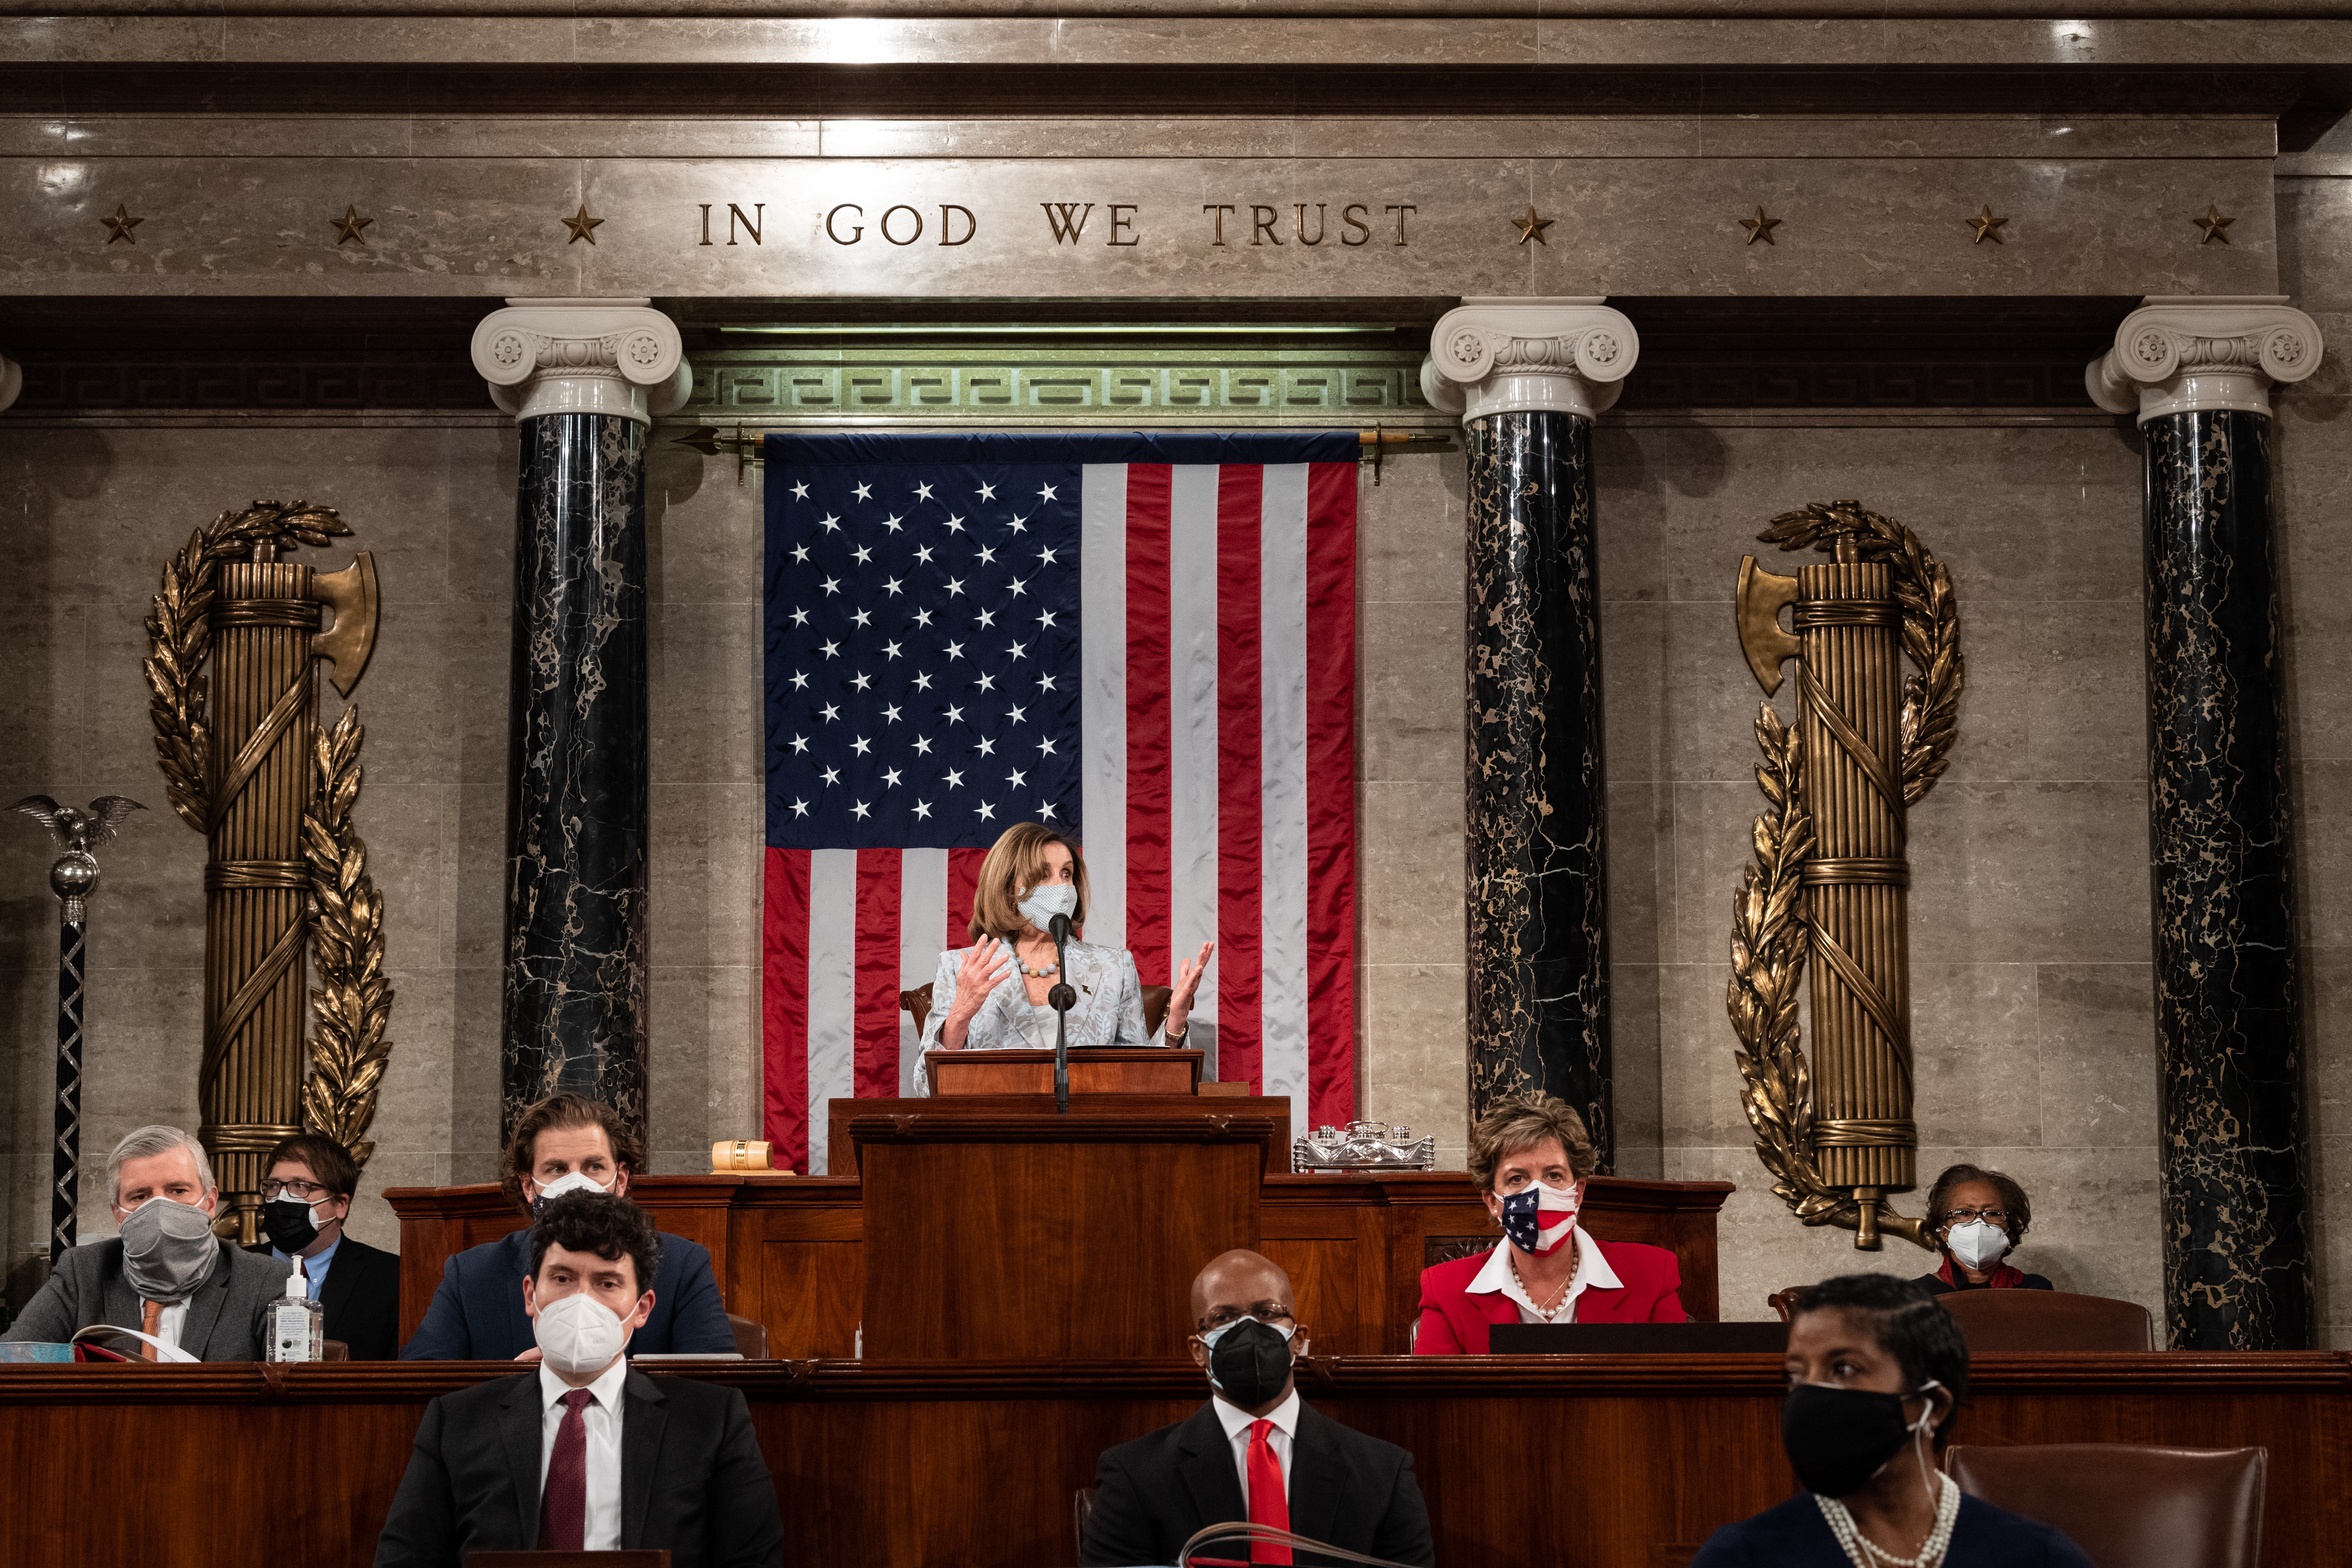 The 117th Congress was gaveled into session on Sunday, January 3, 2021. Photo by Franmarie Metzler.